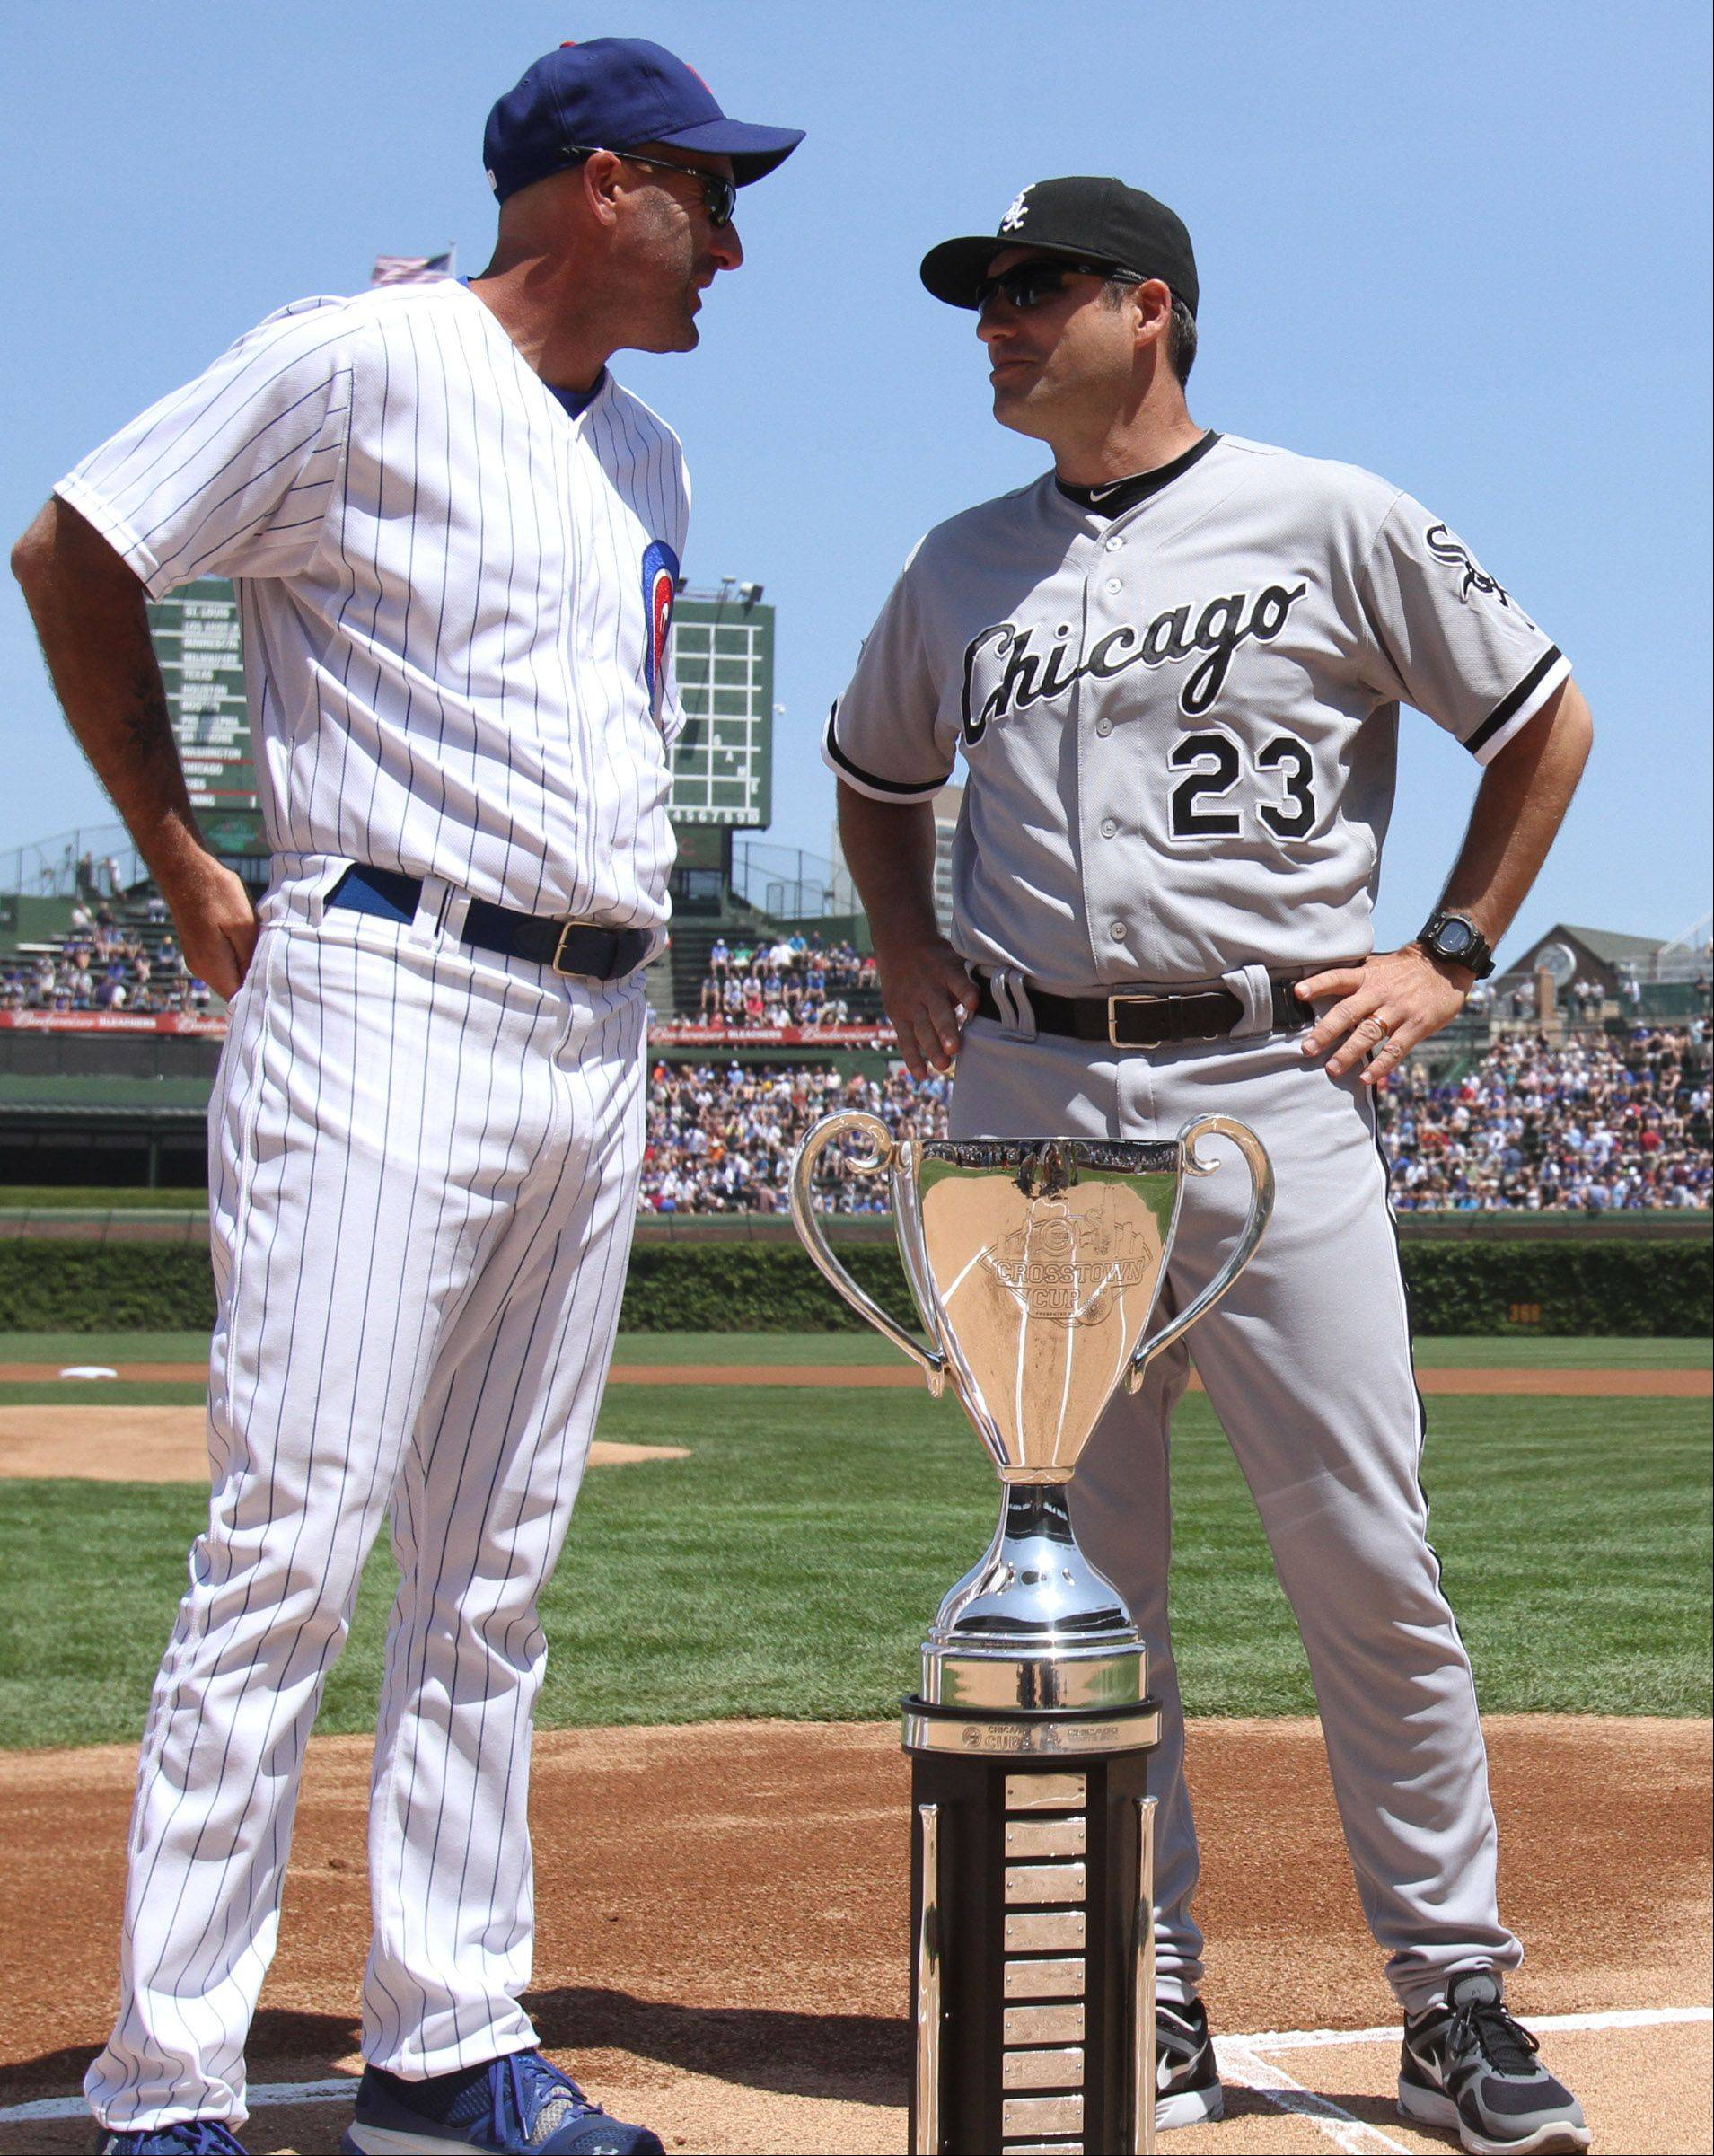 Chicago Cubs manager Dale Sveum and White Sox manager Robin Ventura pose with the BP cup before the teams play at Wrigley Field on Friday, May 18, 2012.